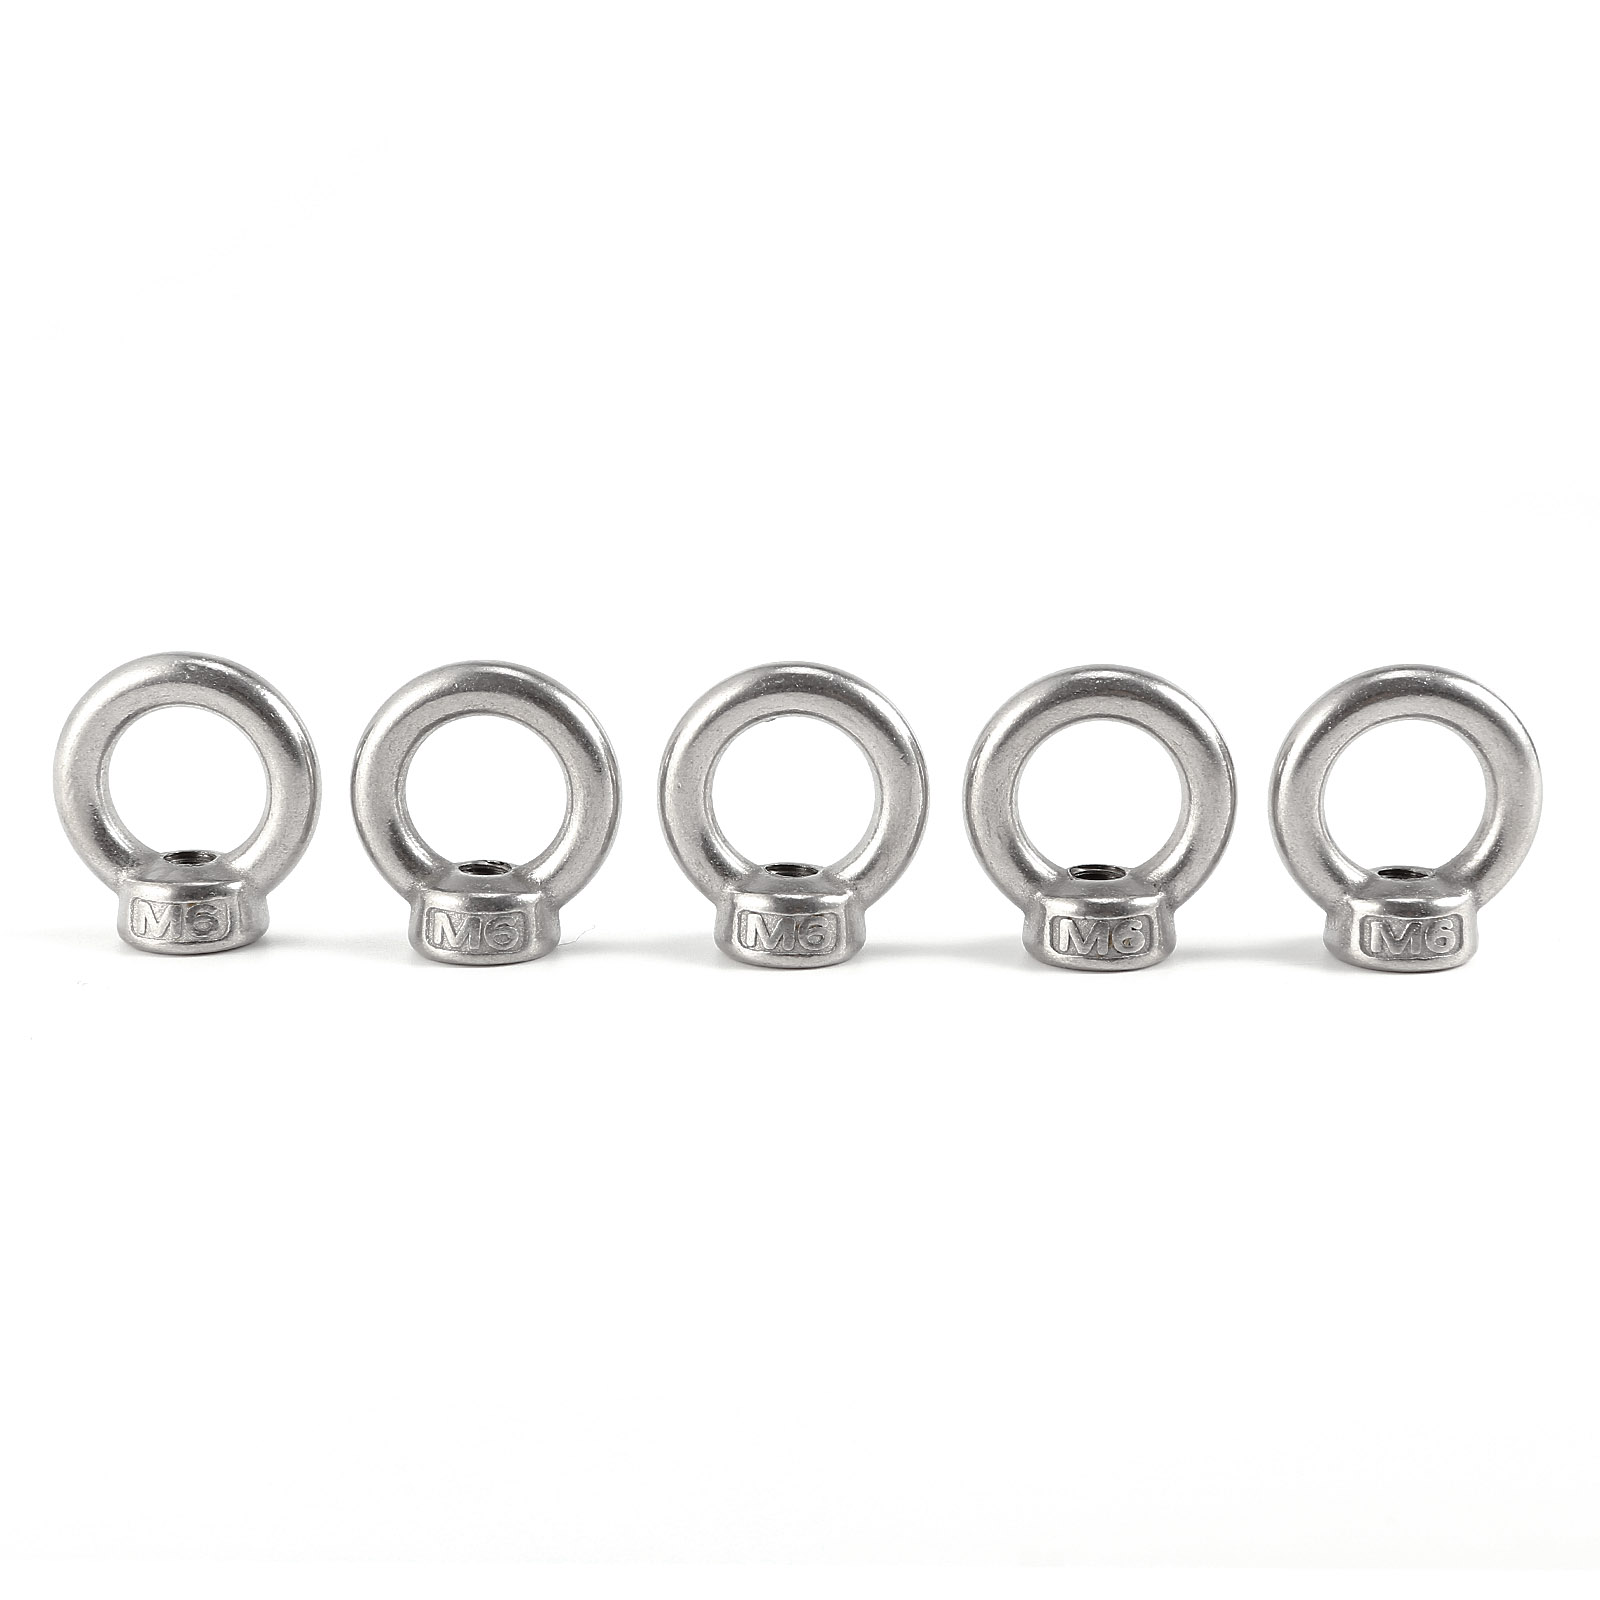 316 Stainless Steel Marine Grade Lifting Eye Bolt Eye Nuts